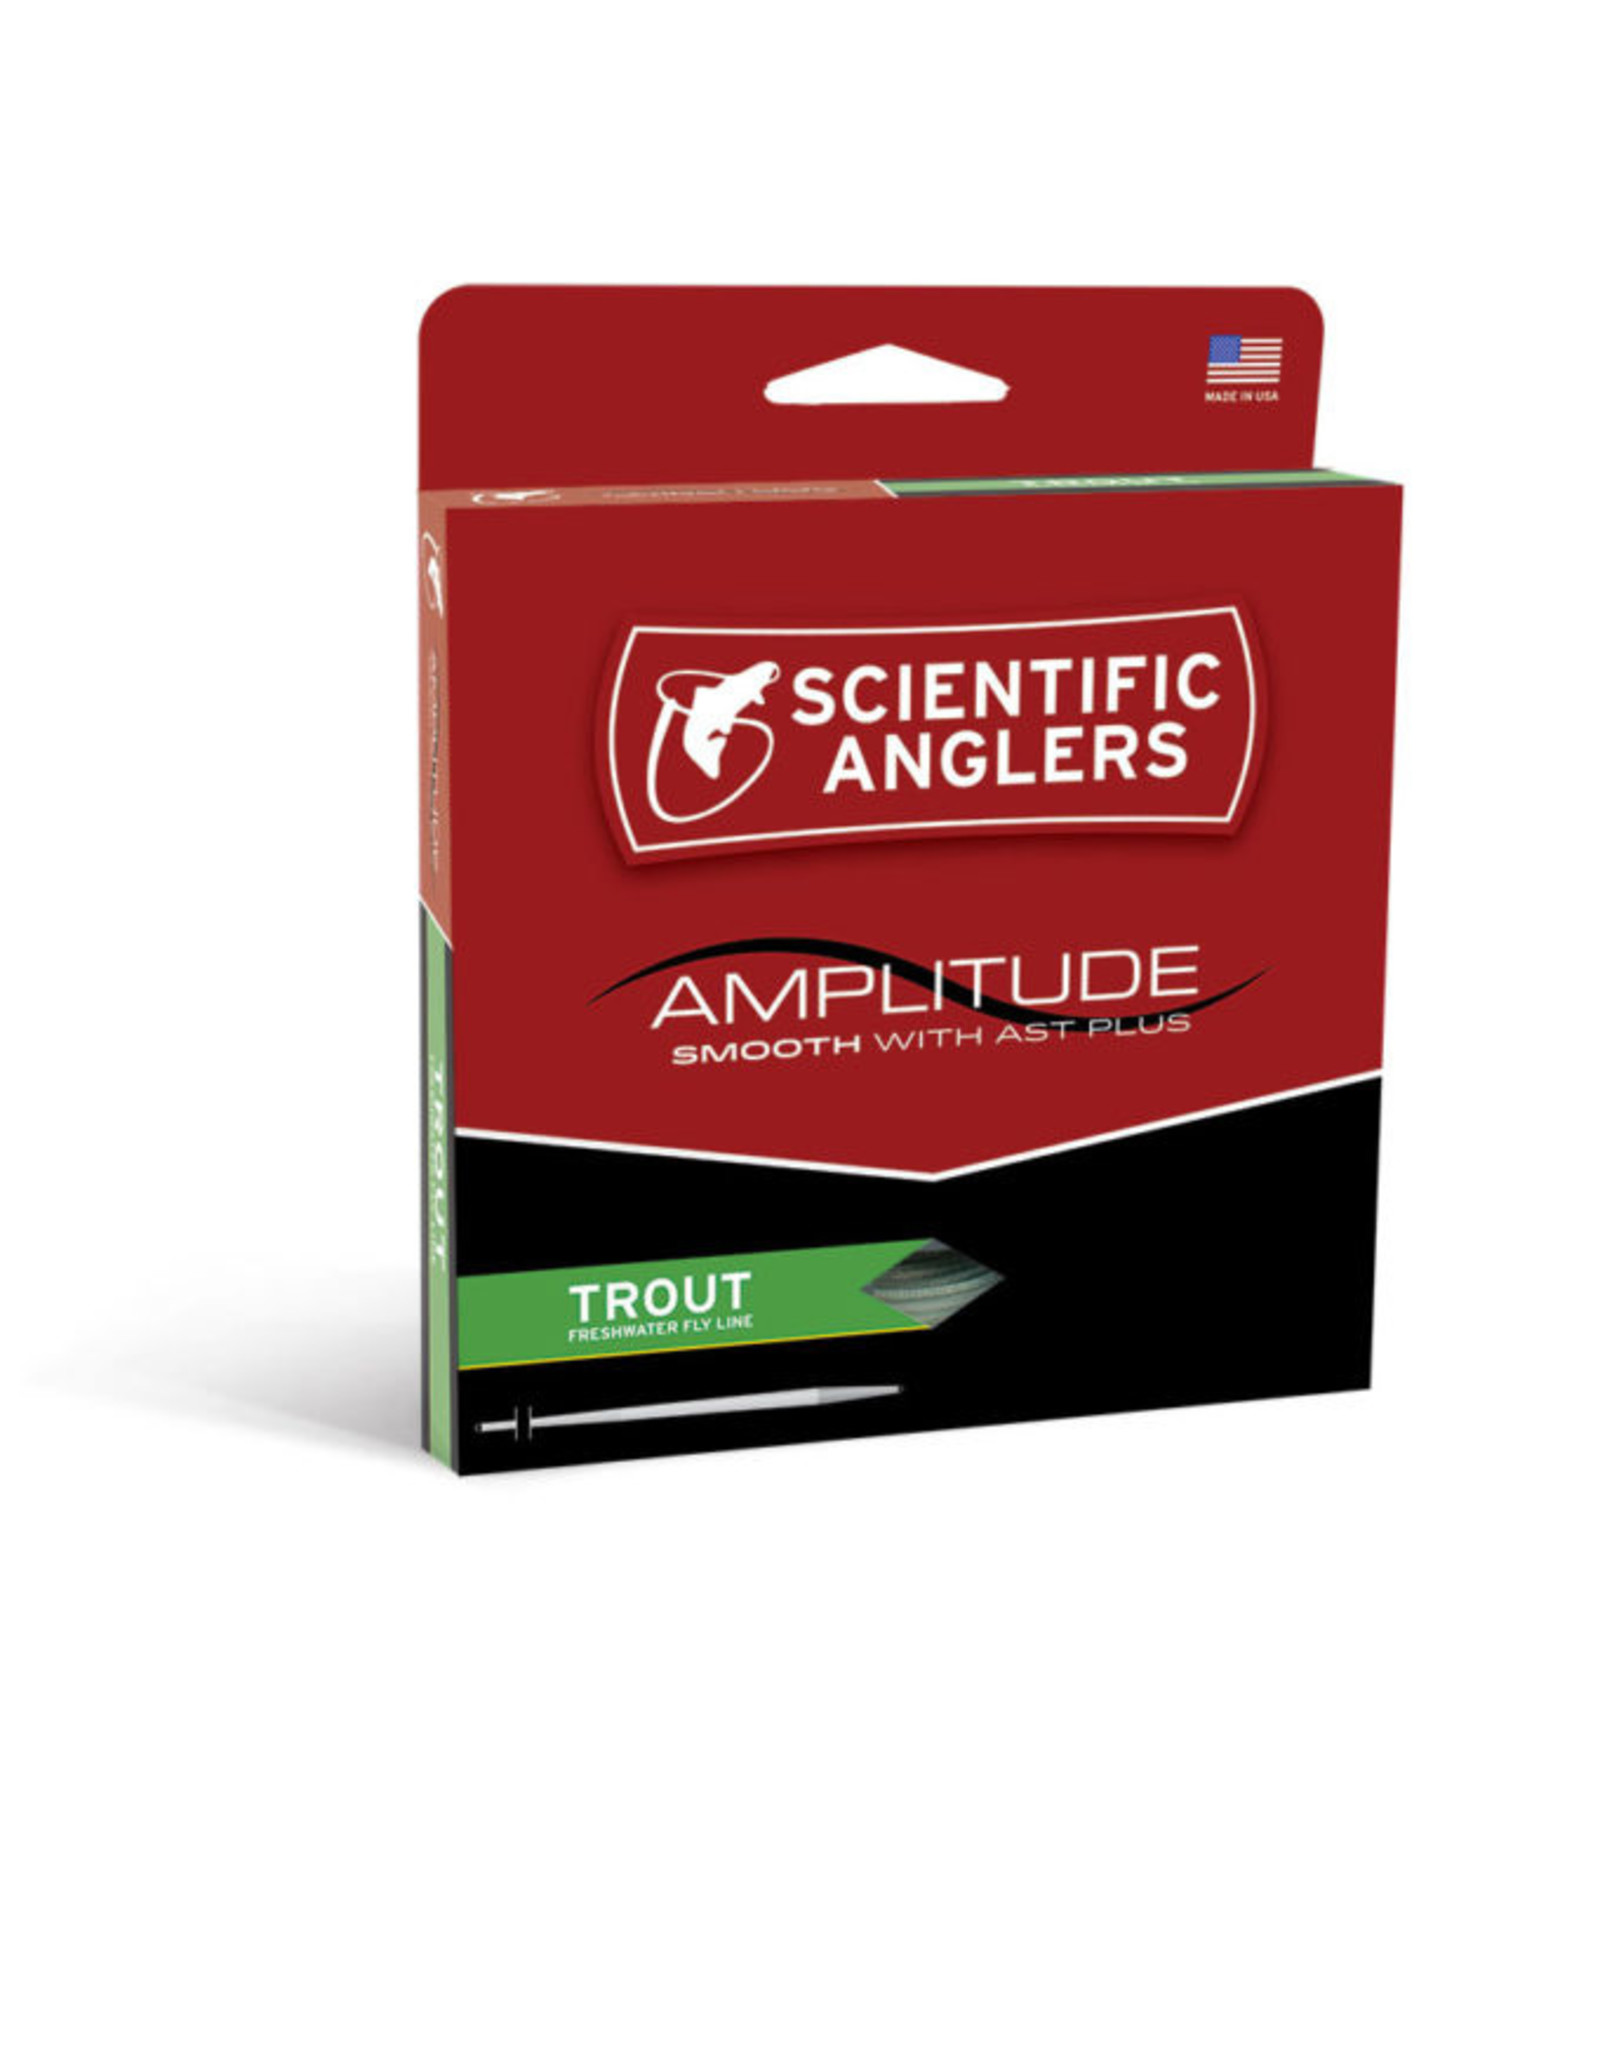 Scientific Anglers Scientific Anglers - Amplitude Smooth Trout Fly Line